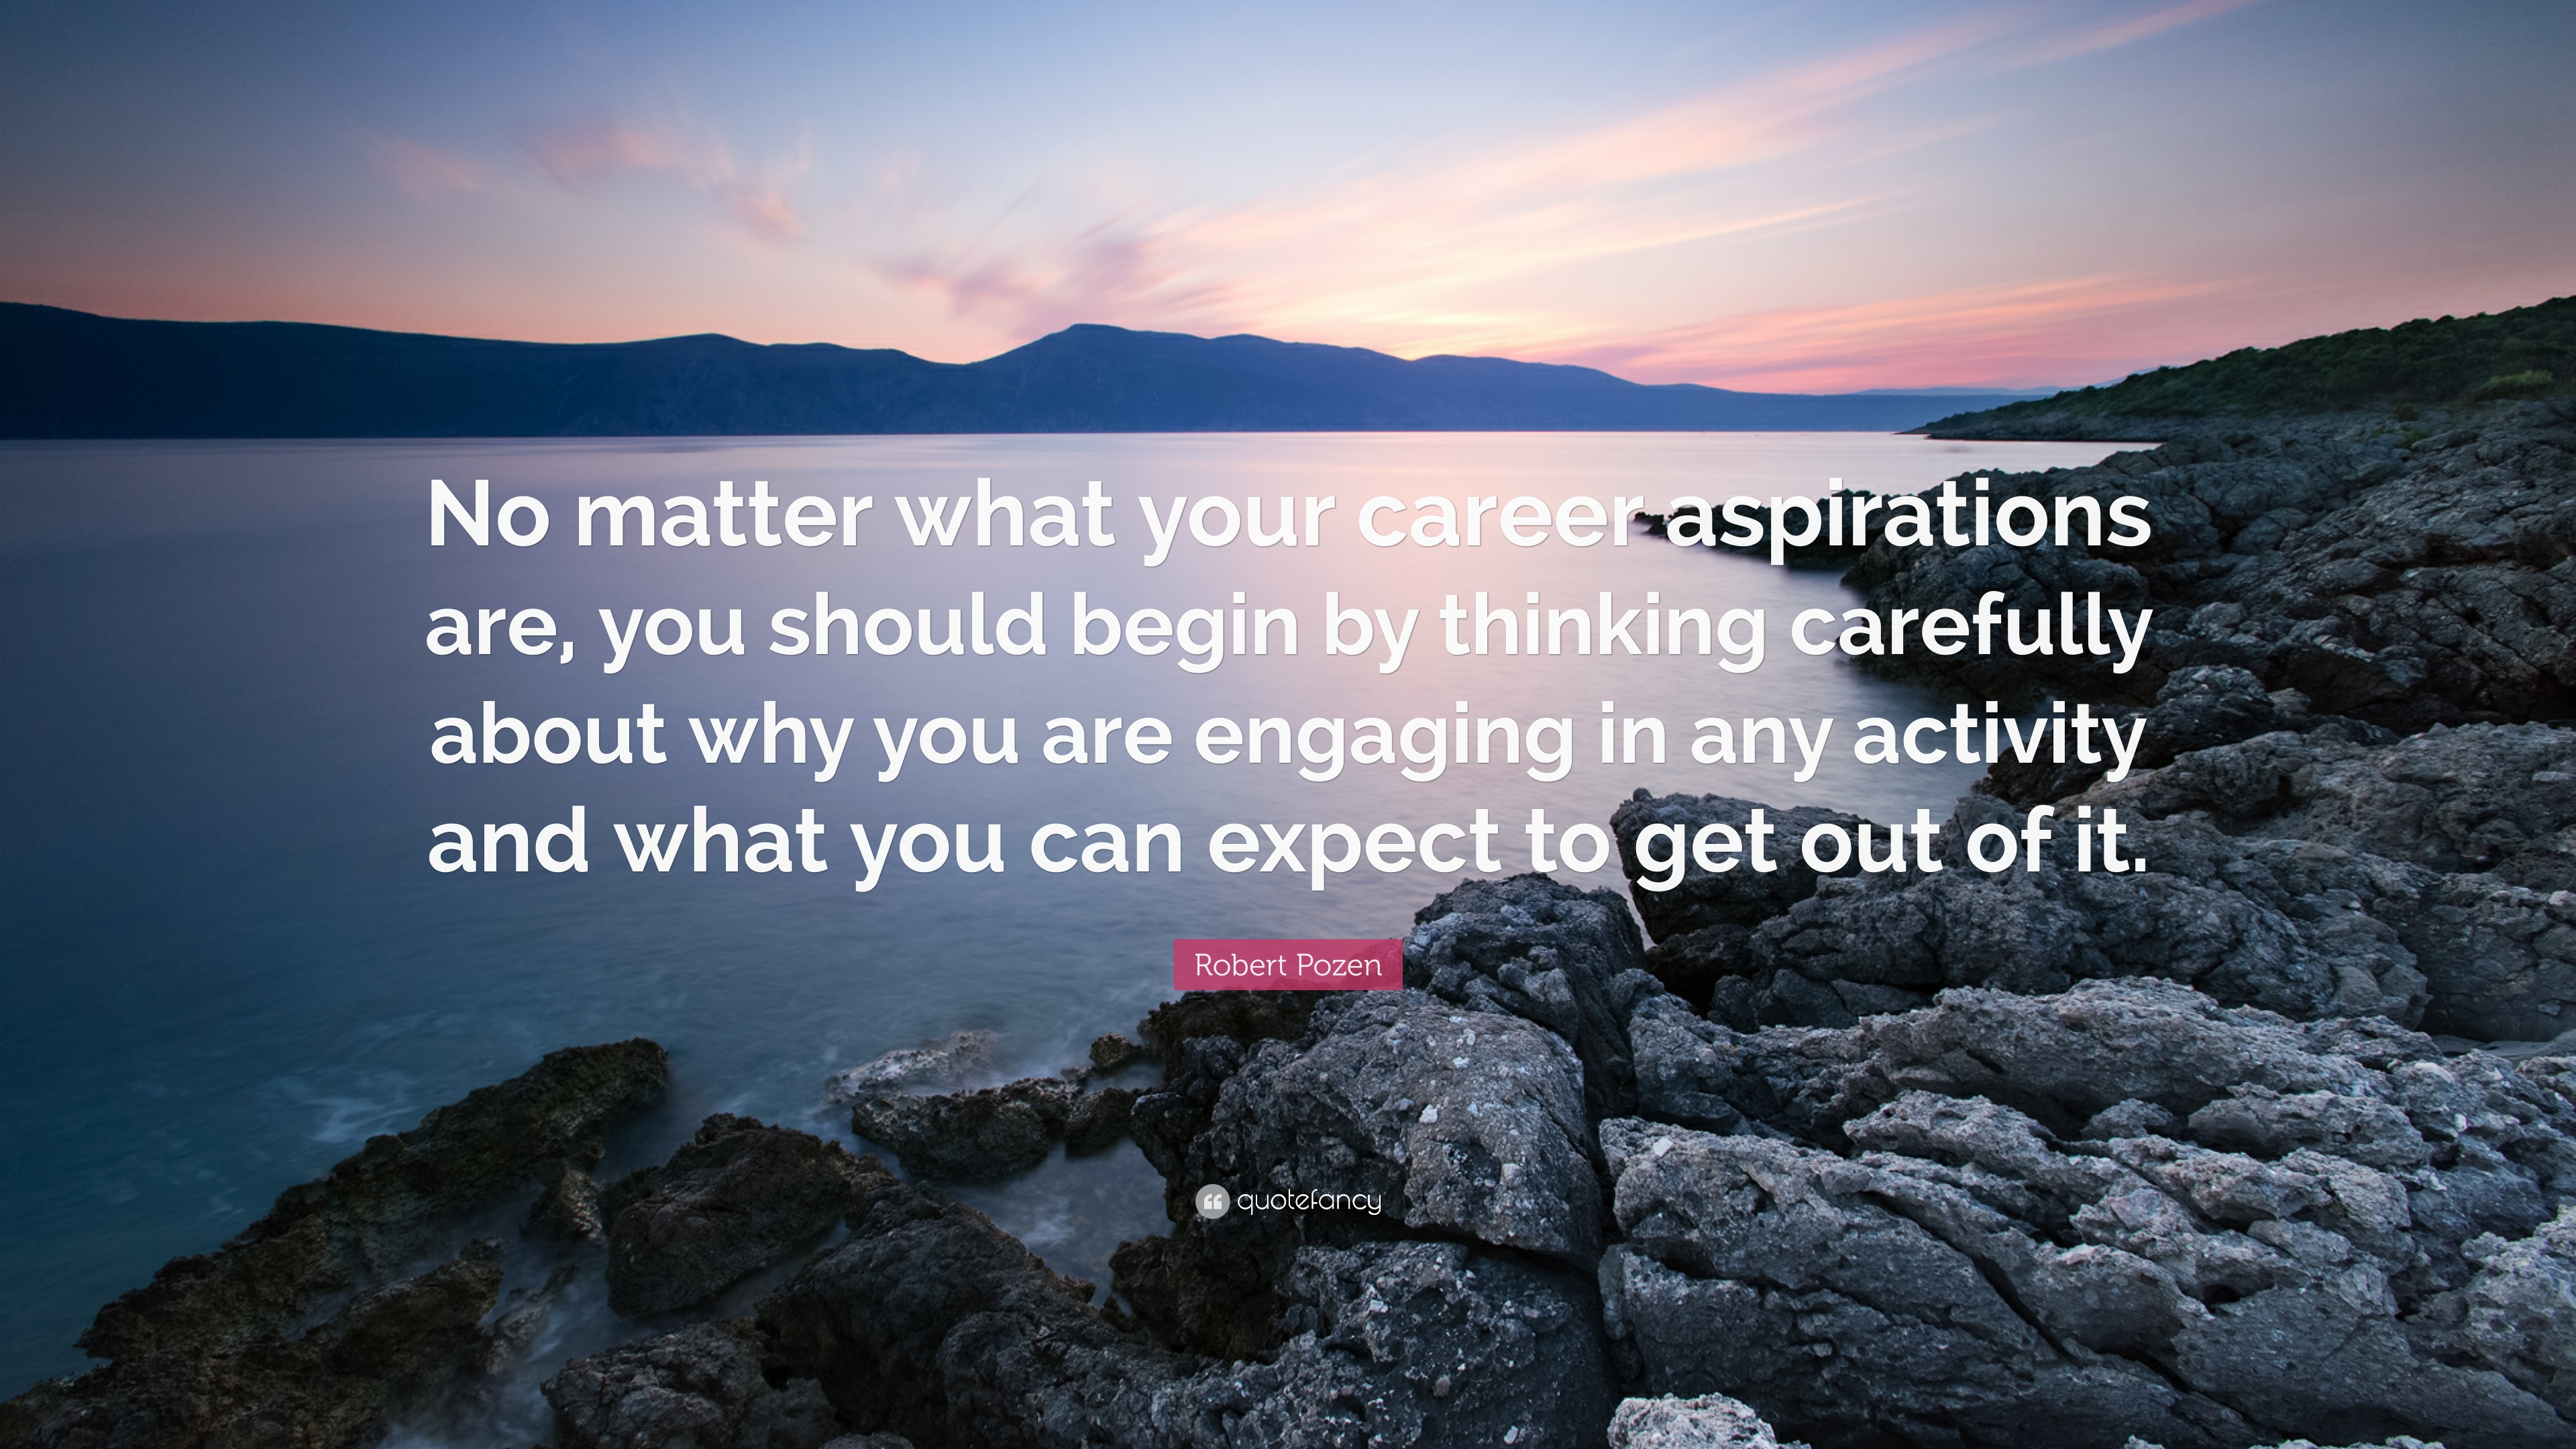 robert pozen quote no matter what your career aspirations are robert pozen quote no matter what your career aspirations are you should begin